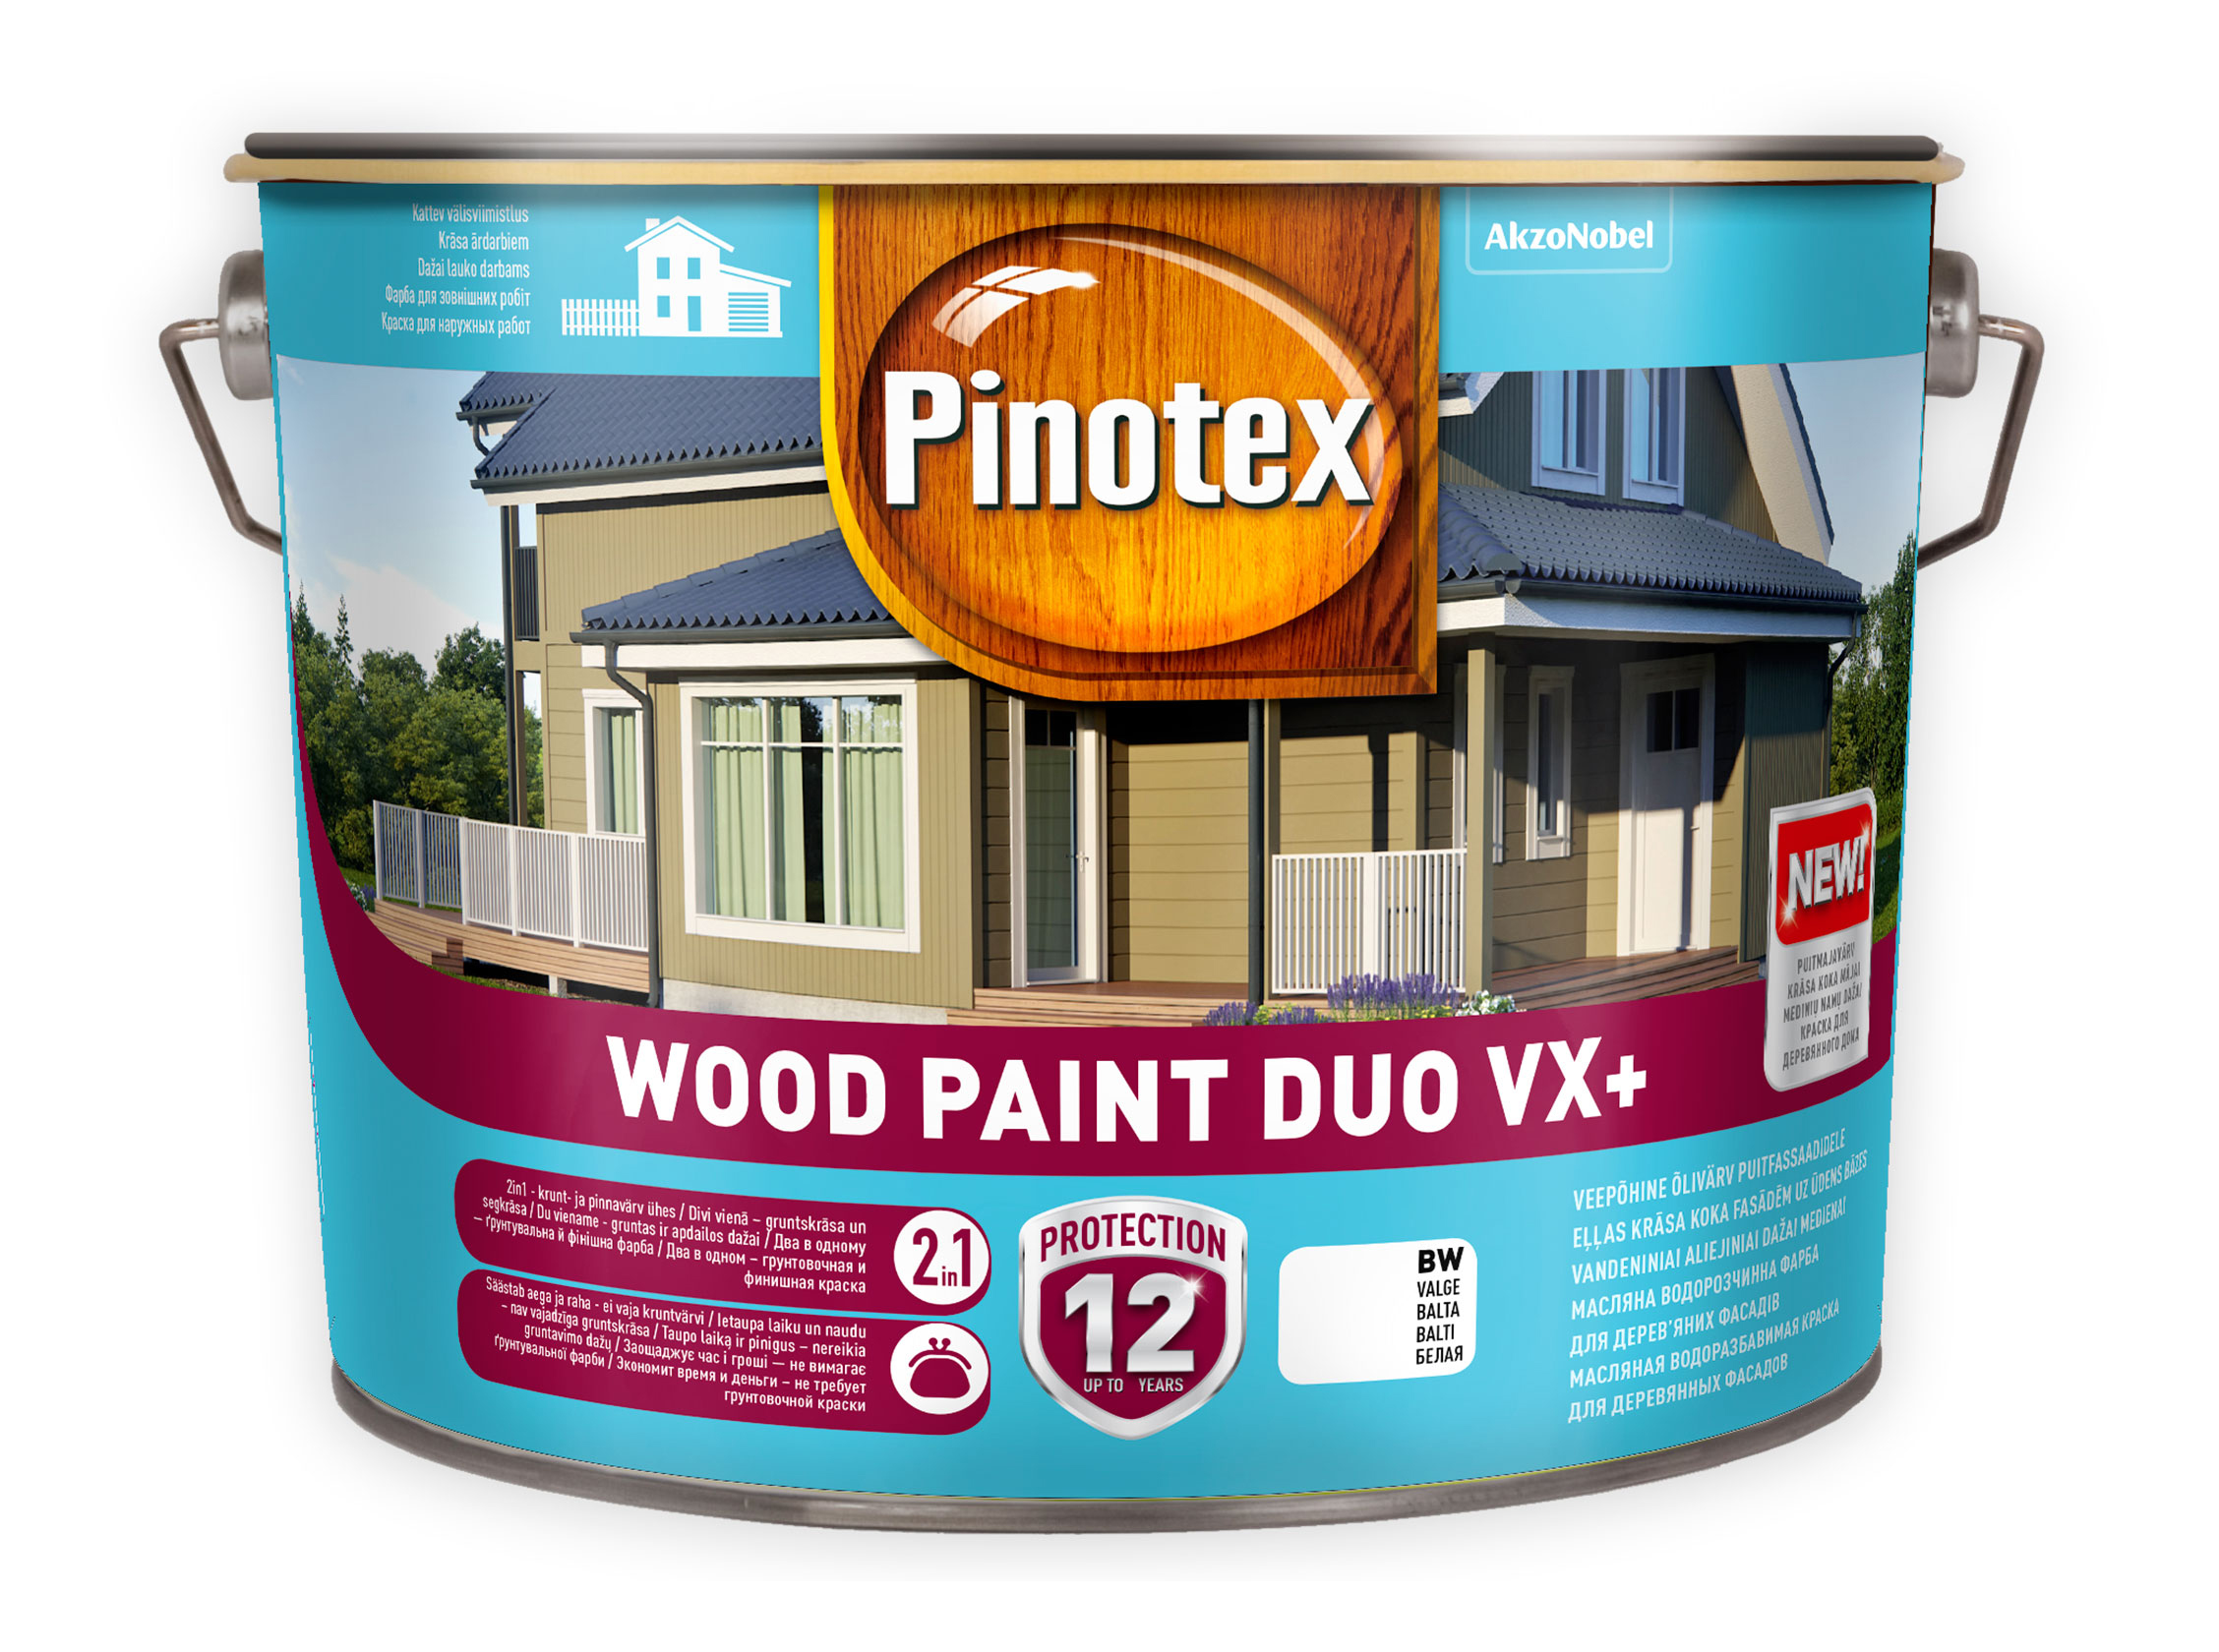 Pinotex Wood Paint Duo VX+ 10L